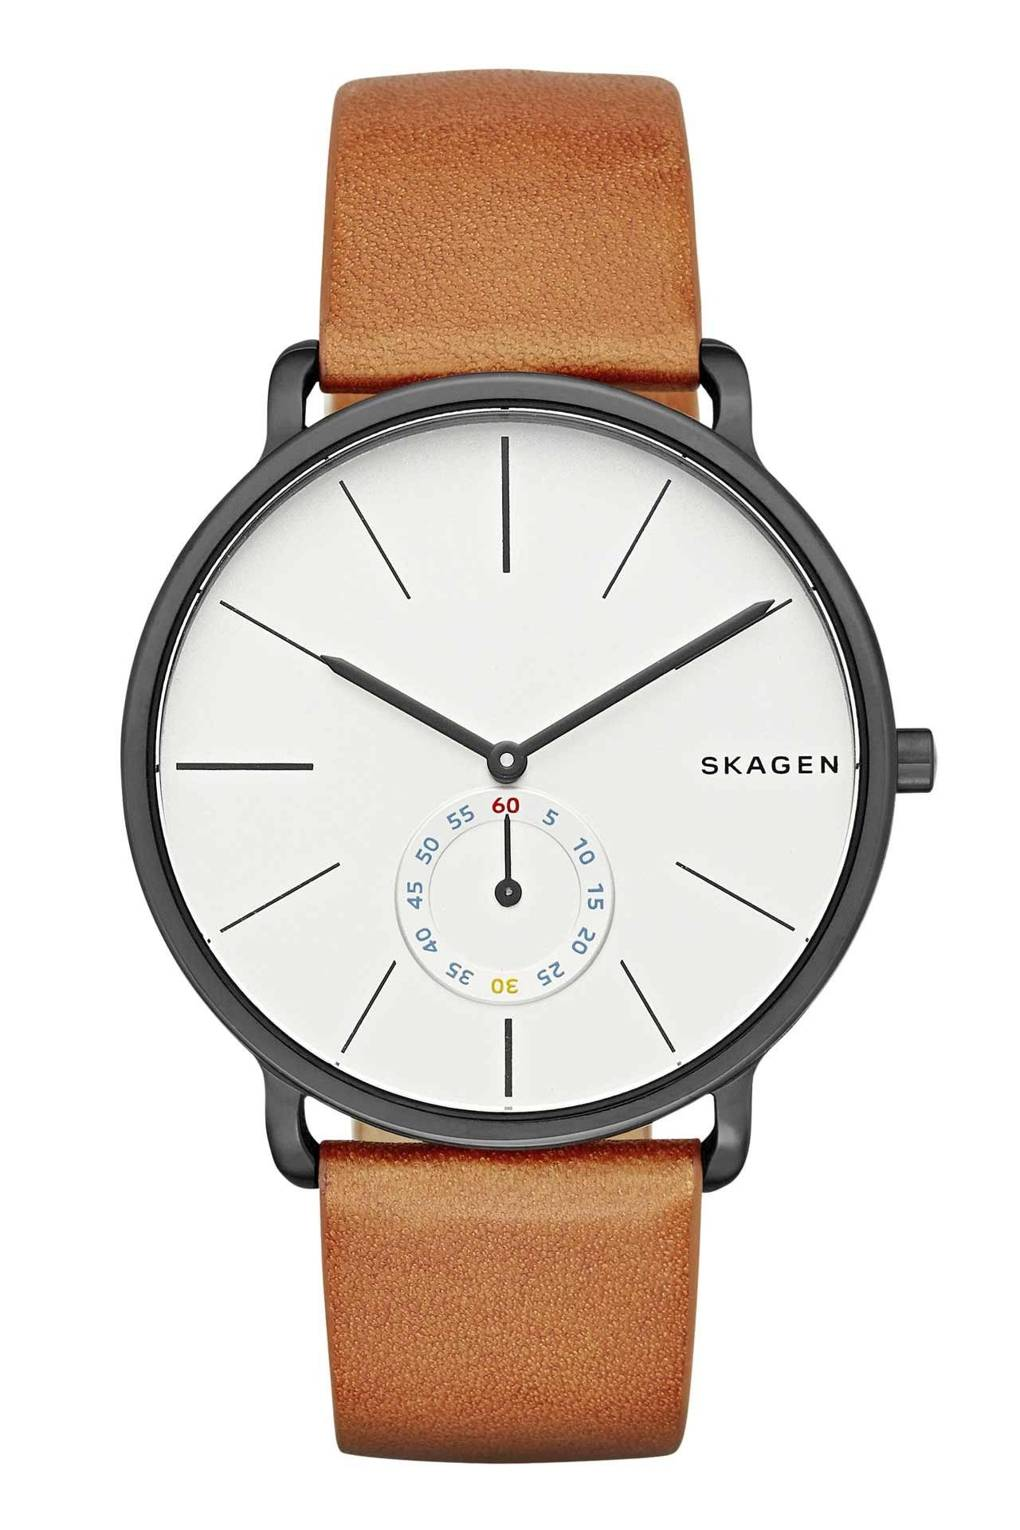 station tommy delivery preppy watches free hilfiger shade